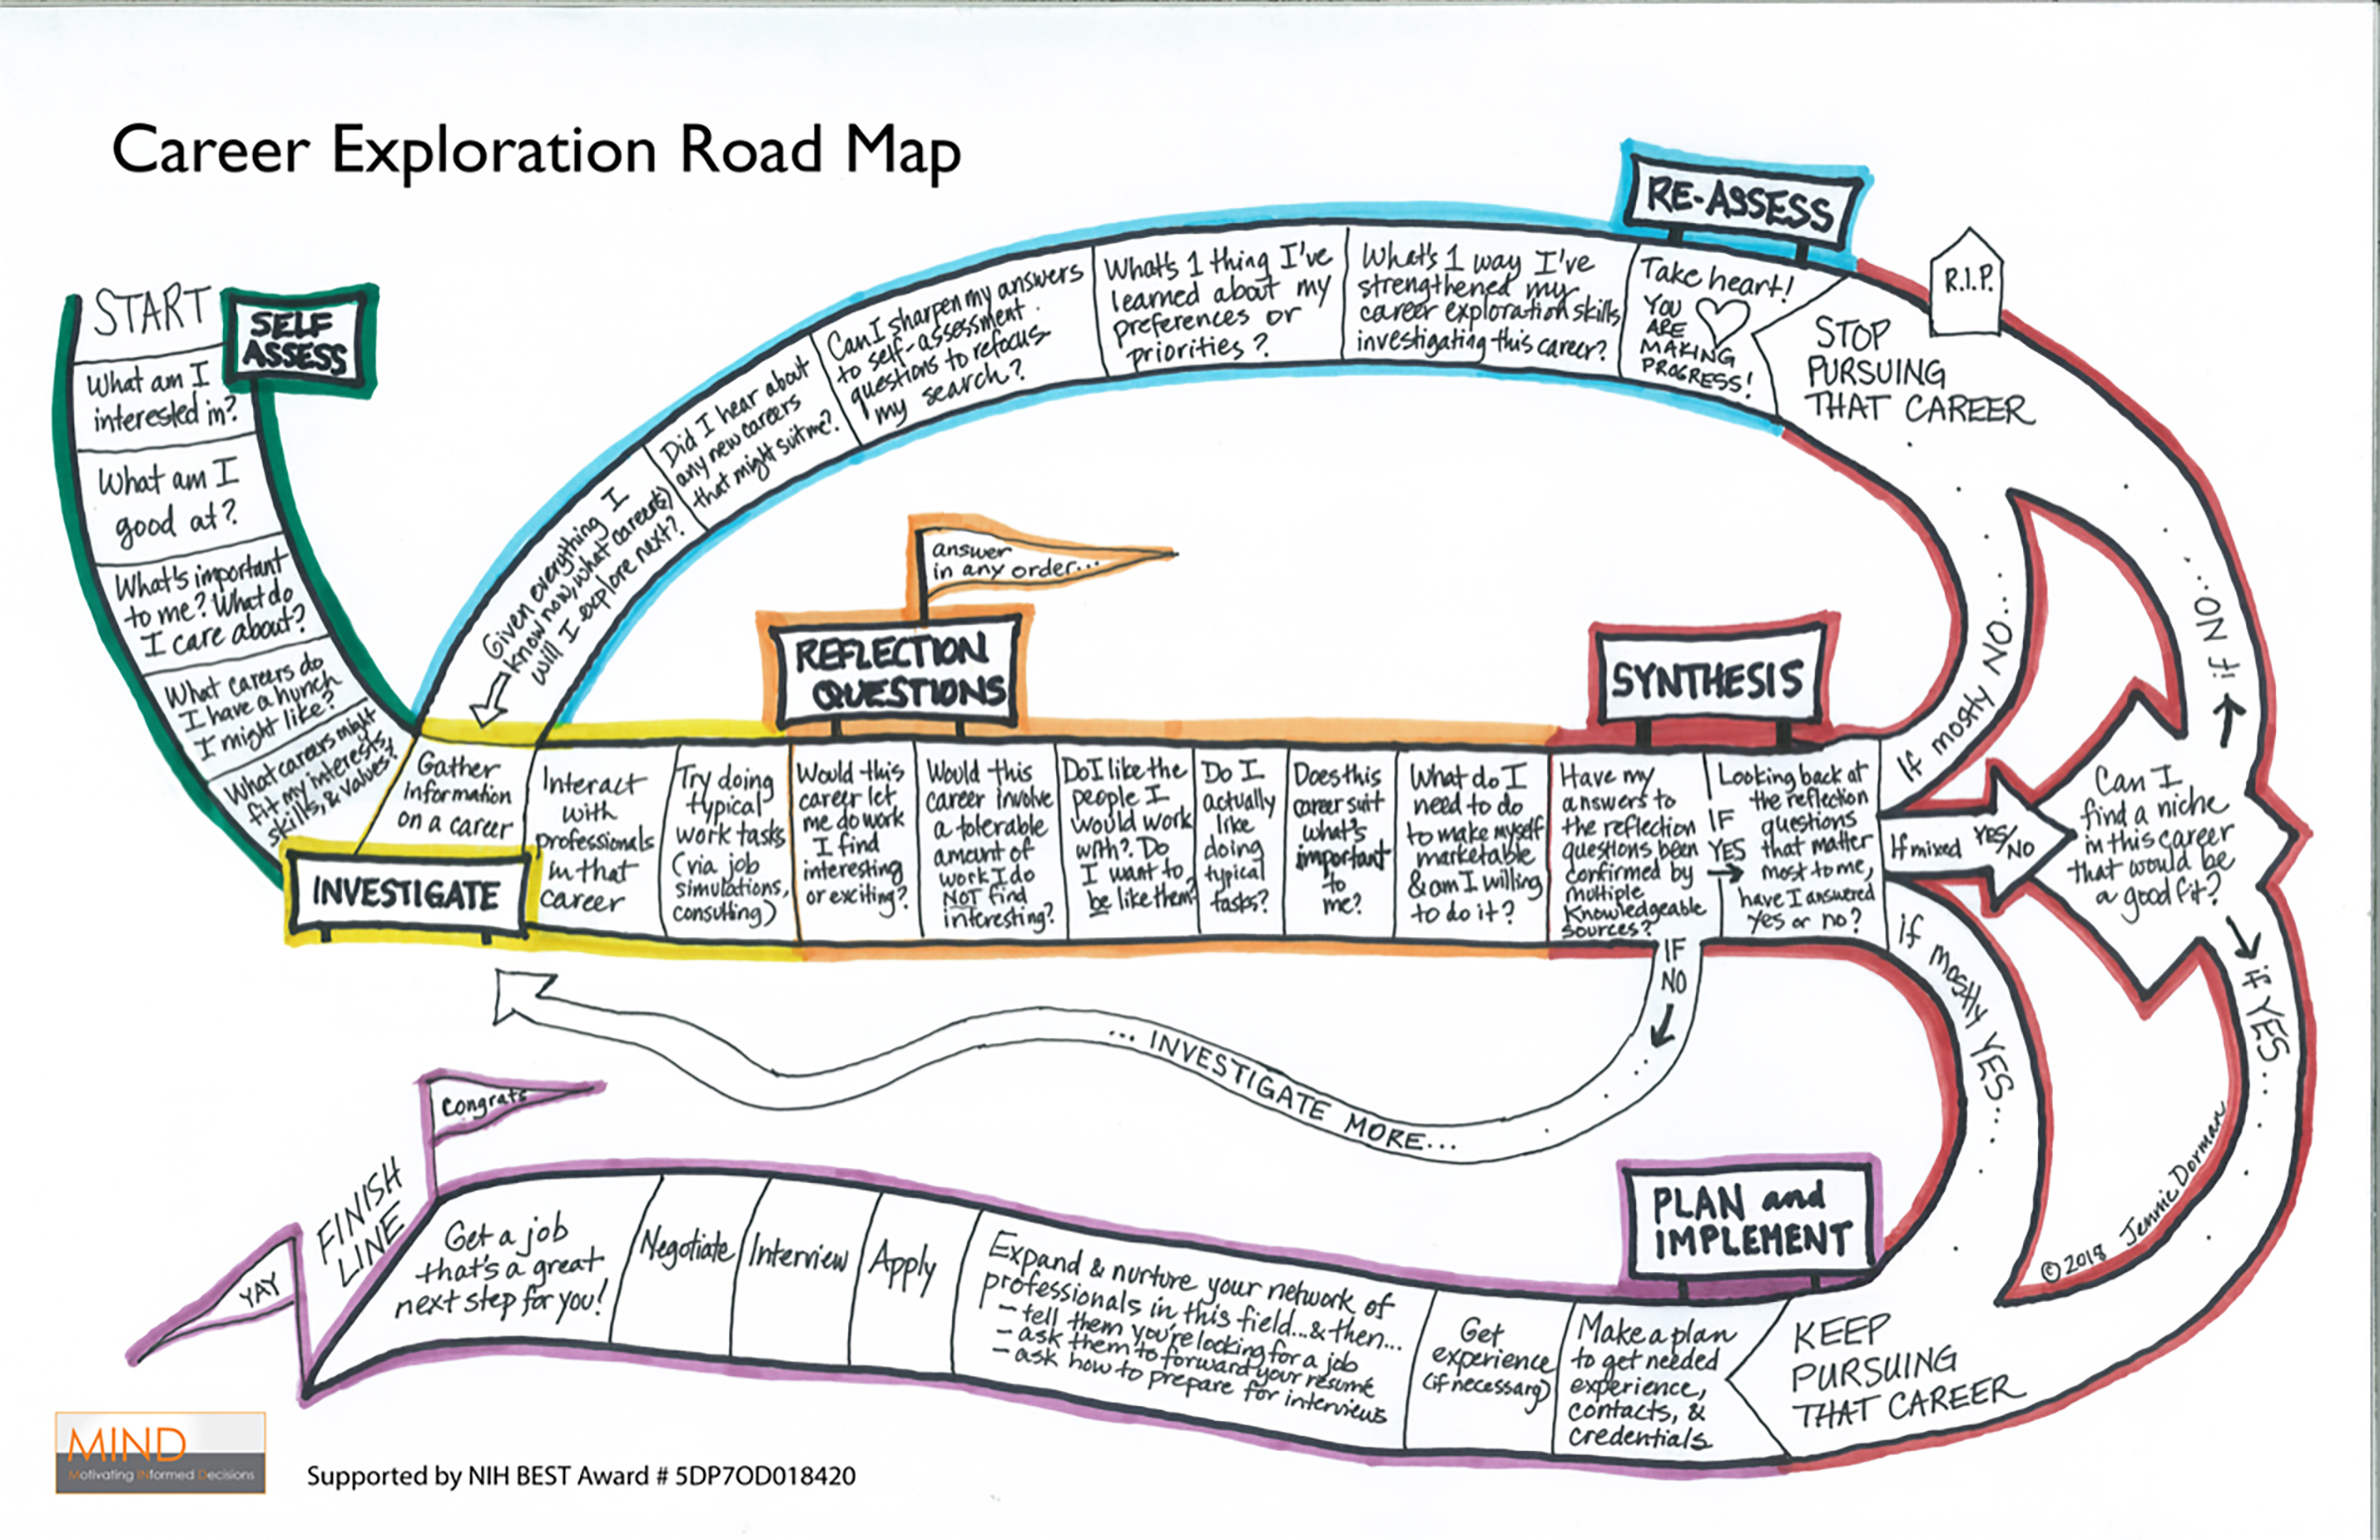 Career Exploration Road Map